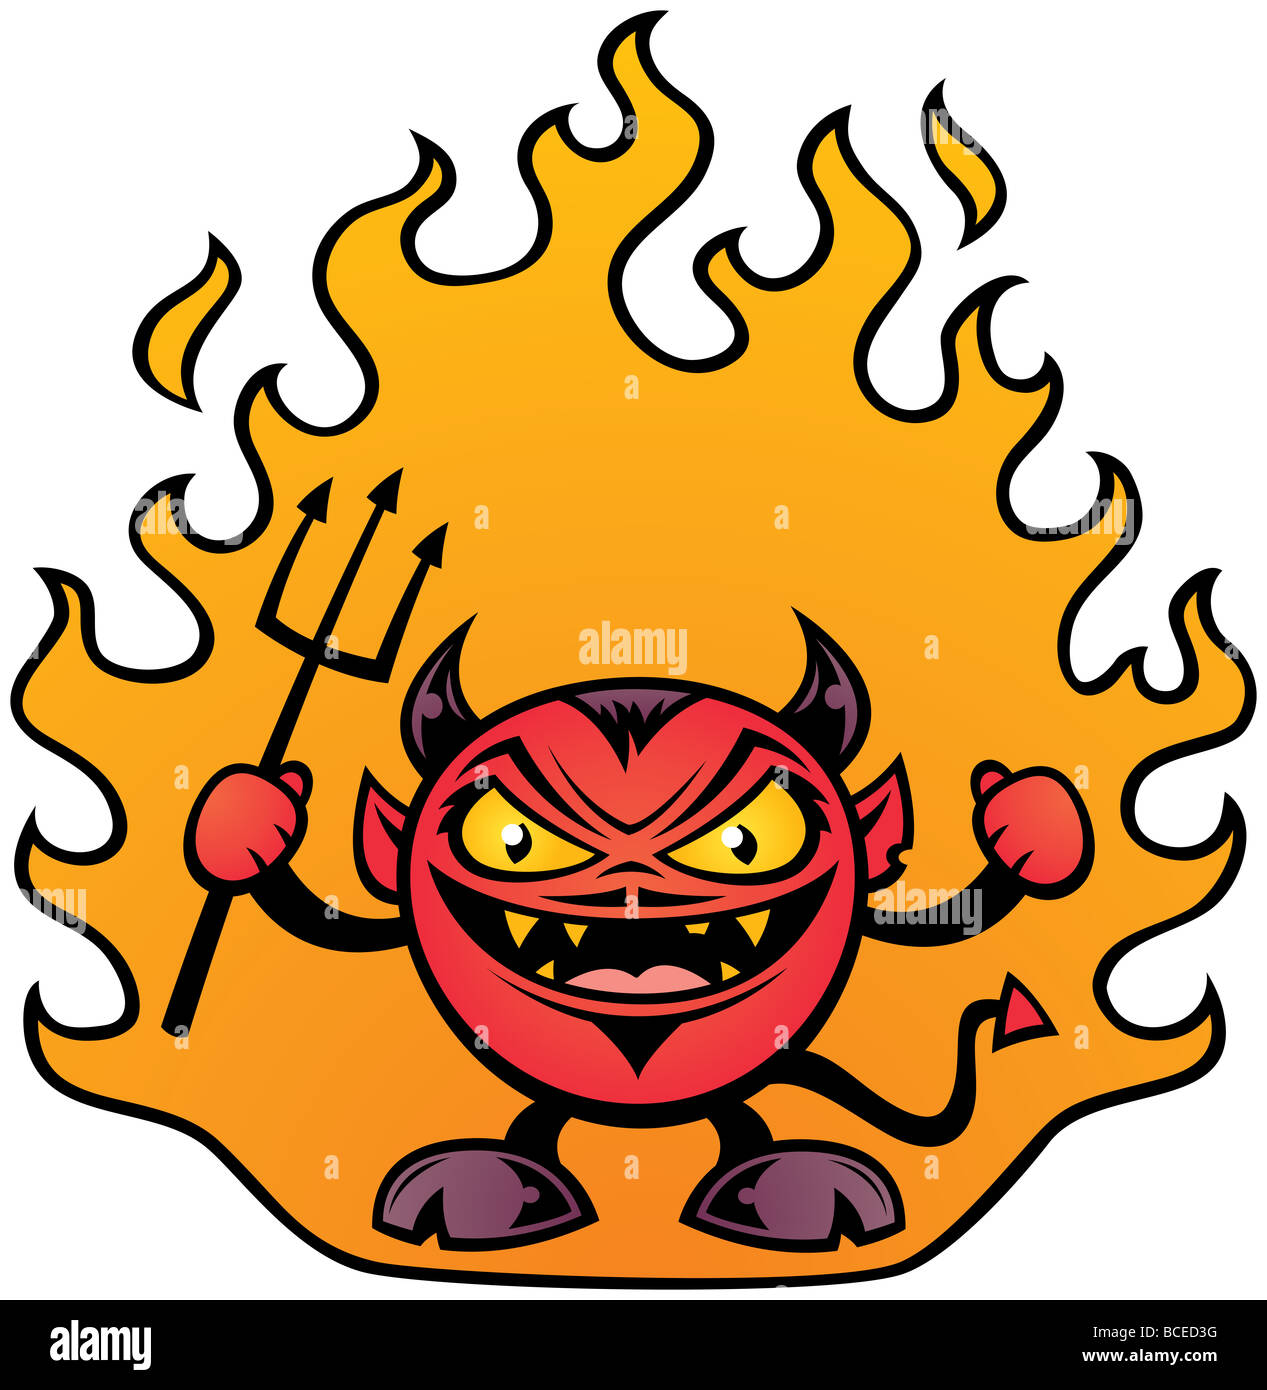 Vector illustration of a fat little devil character. - Stock Image